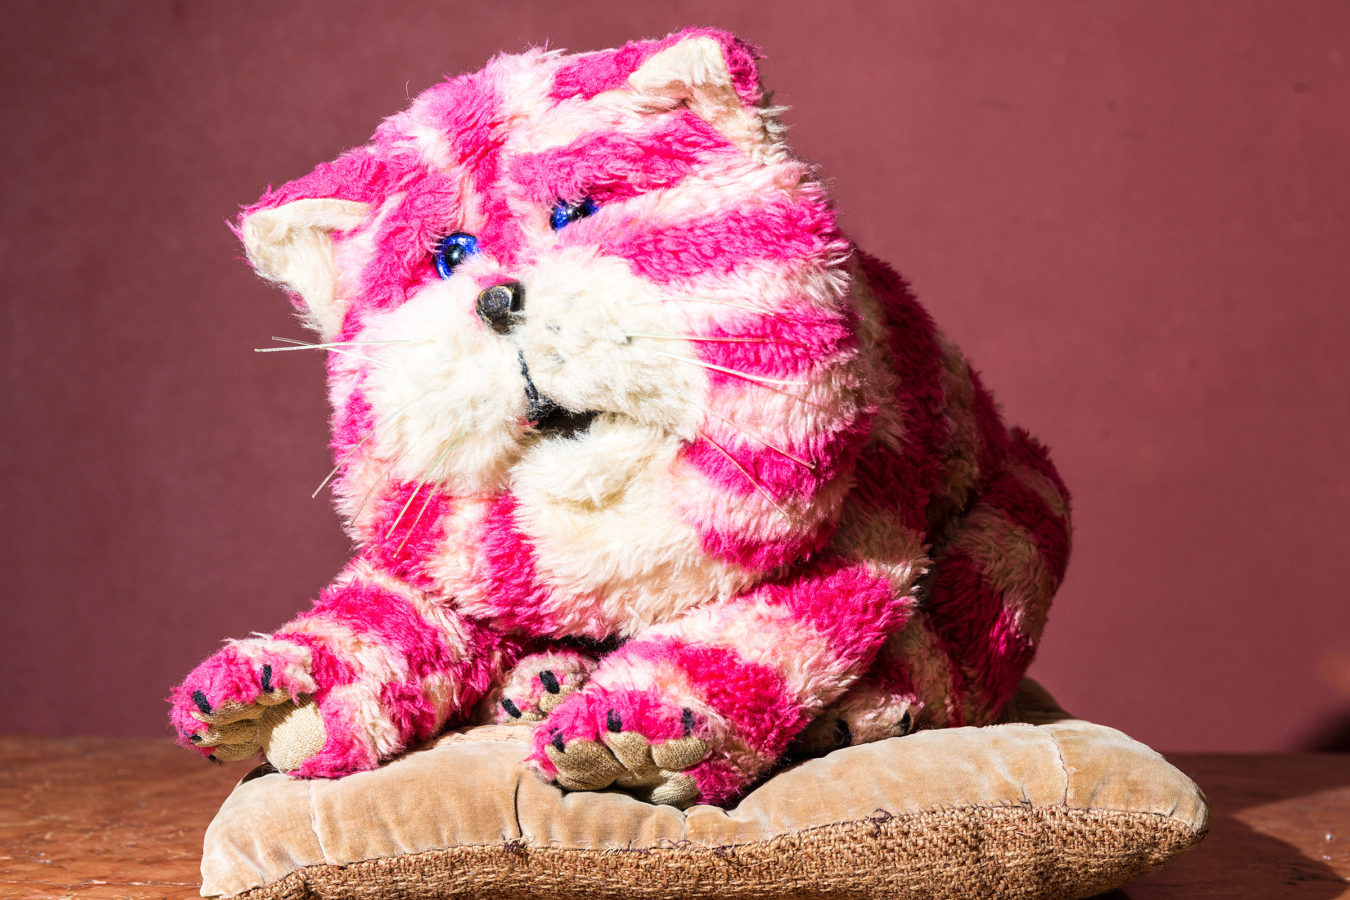 Bagpuss the pink and white cat sitting on a cushion.